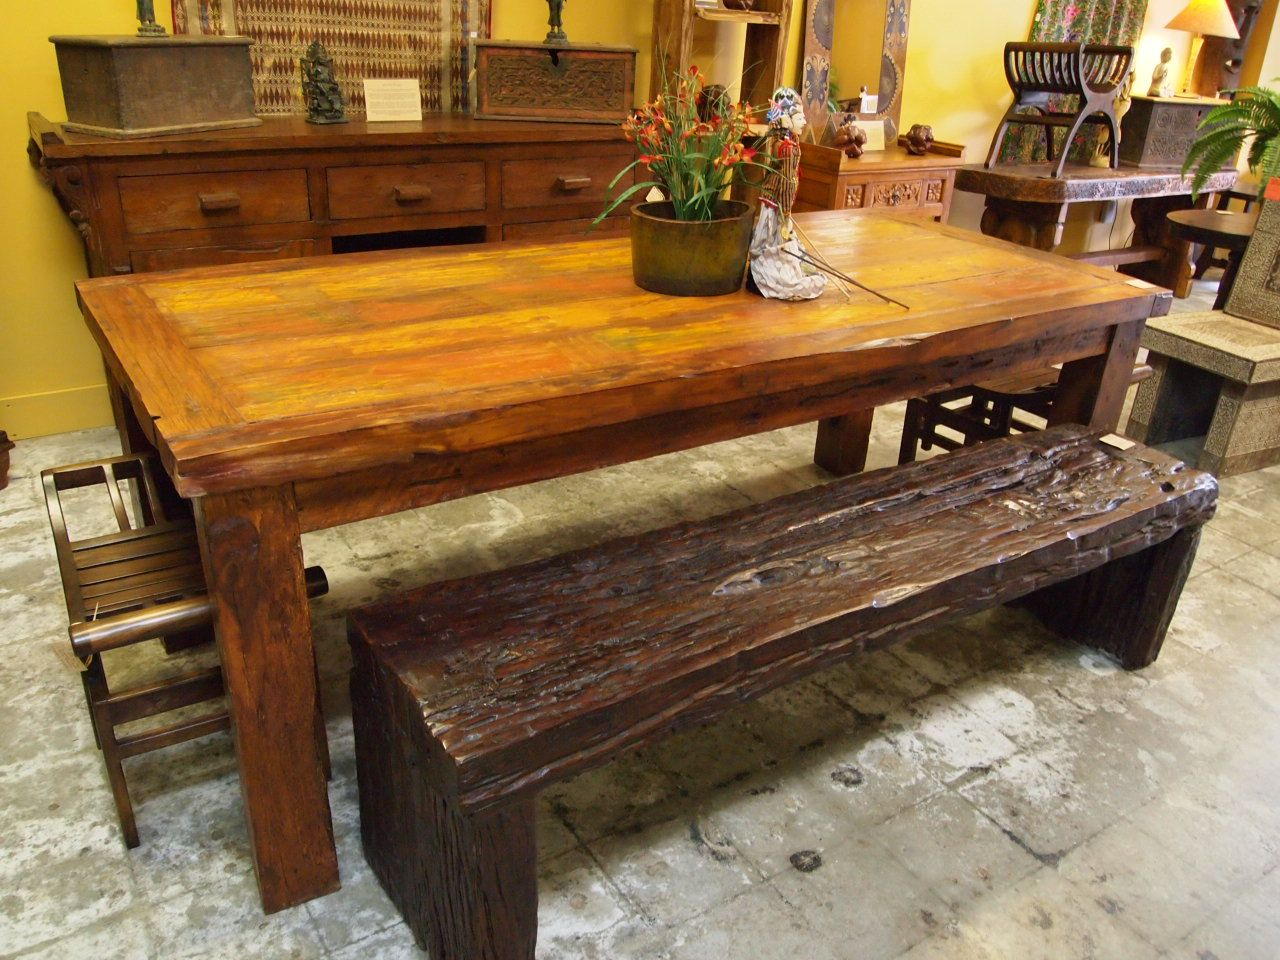 Iron Wood Dining Table Reclaimed Wood Dining Table Rustic Ironwood Bench Visit Gado